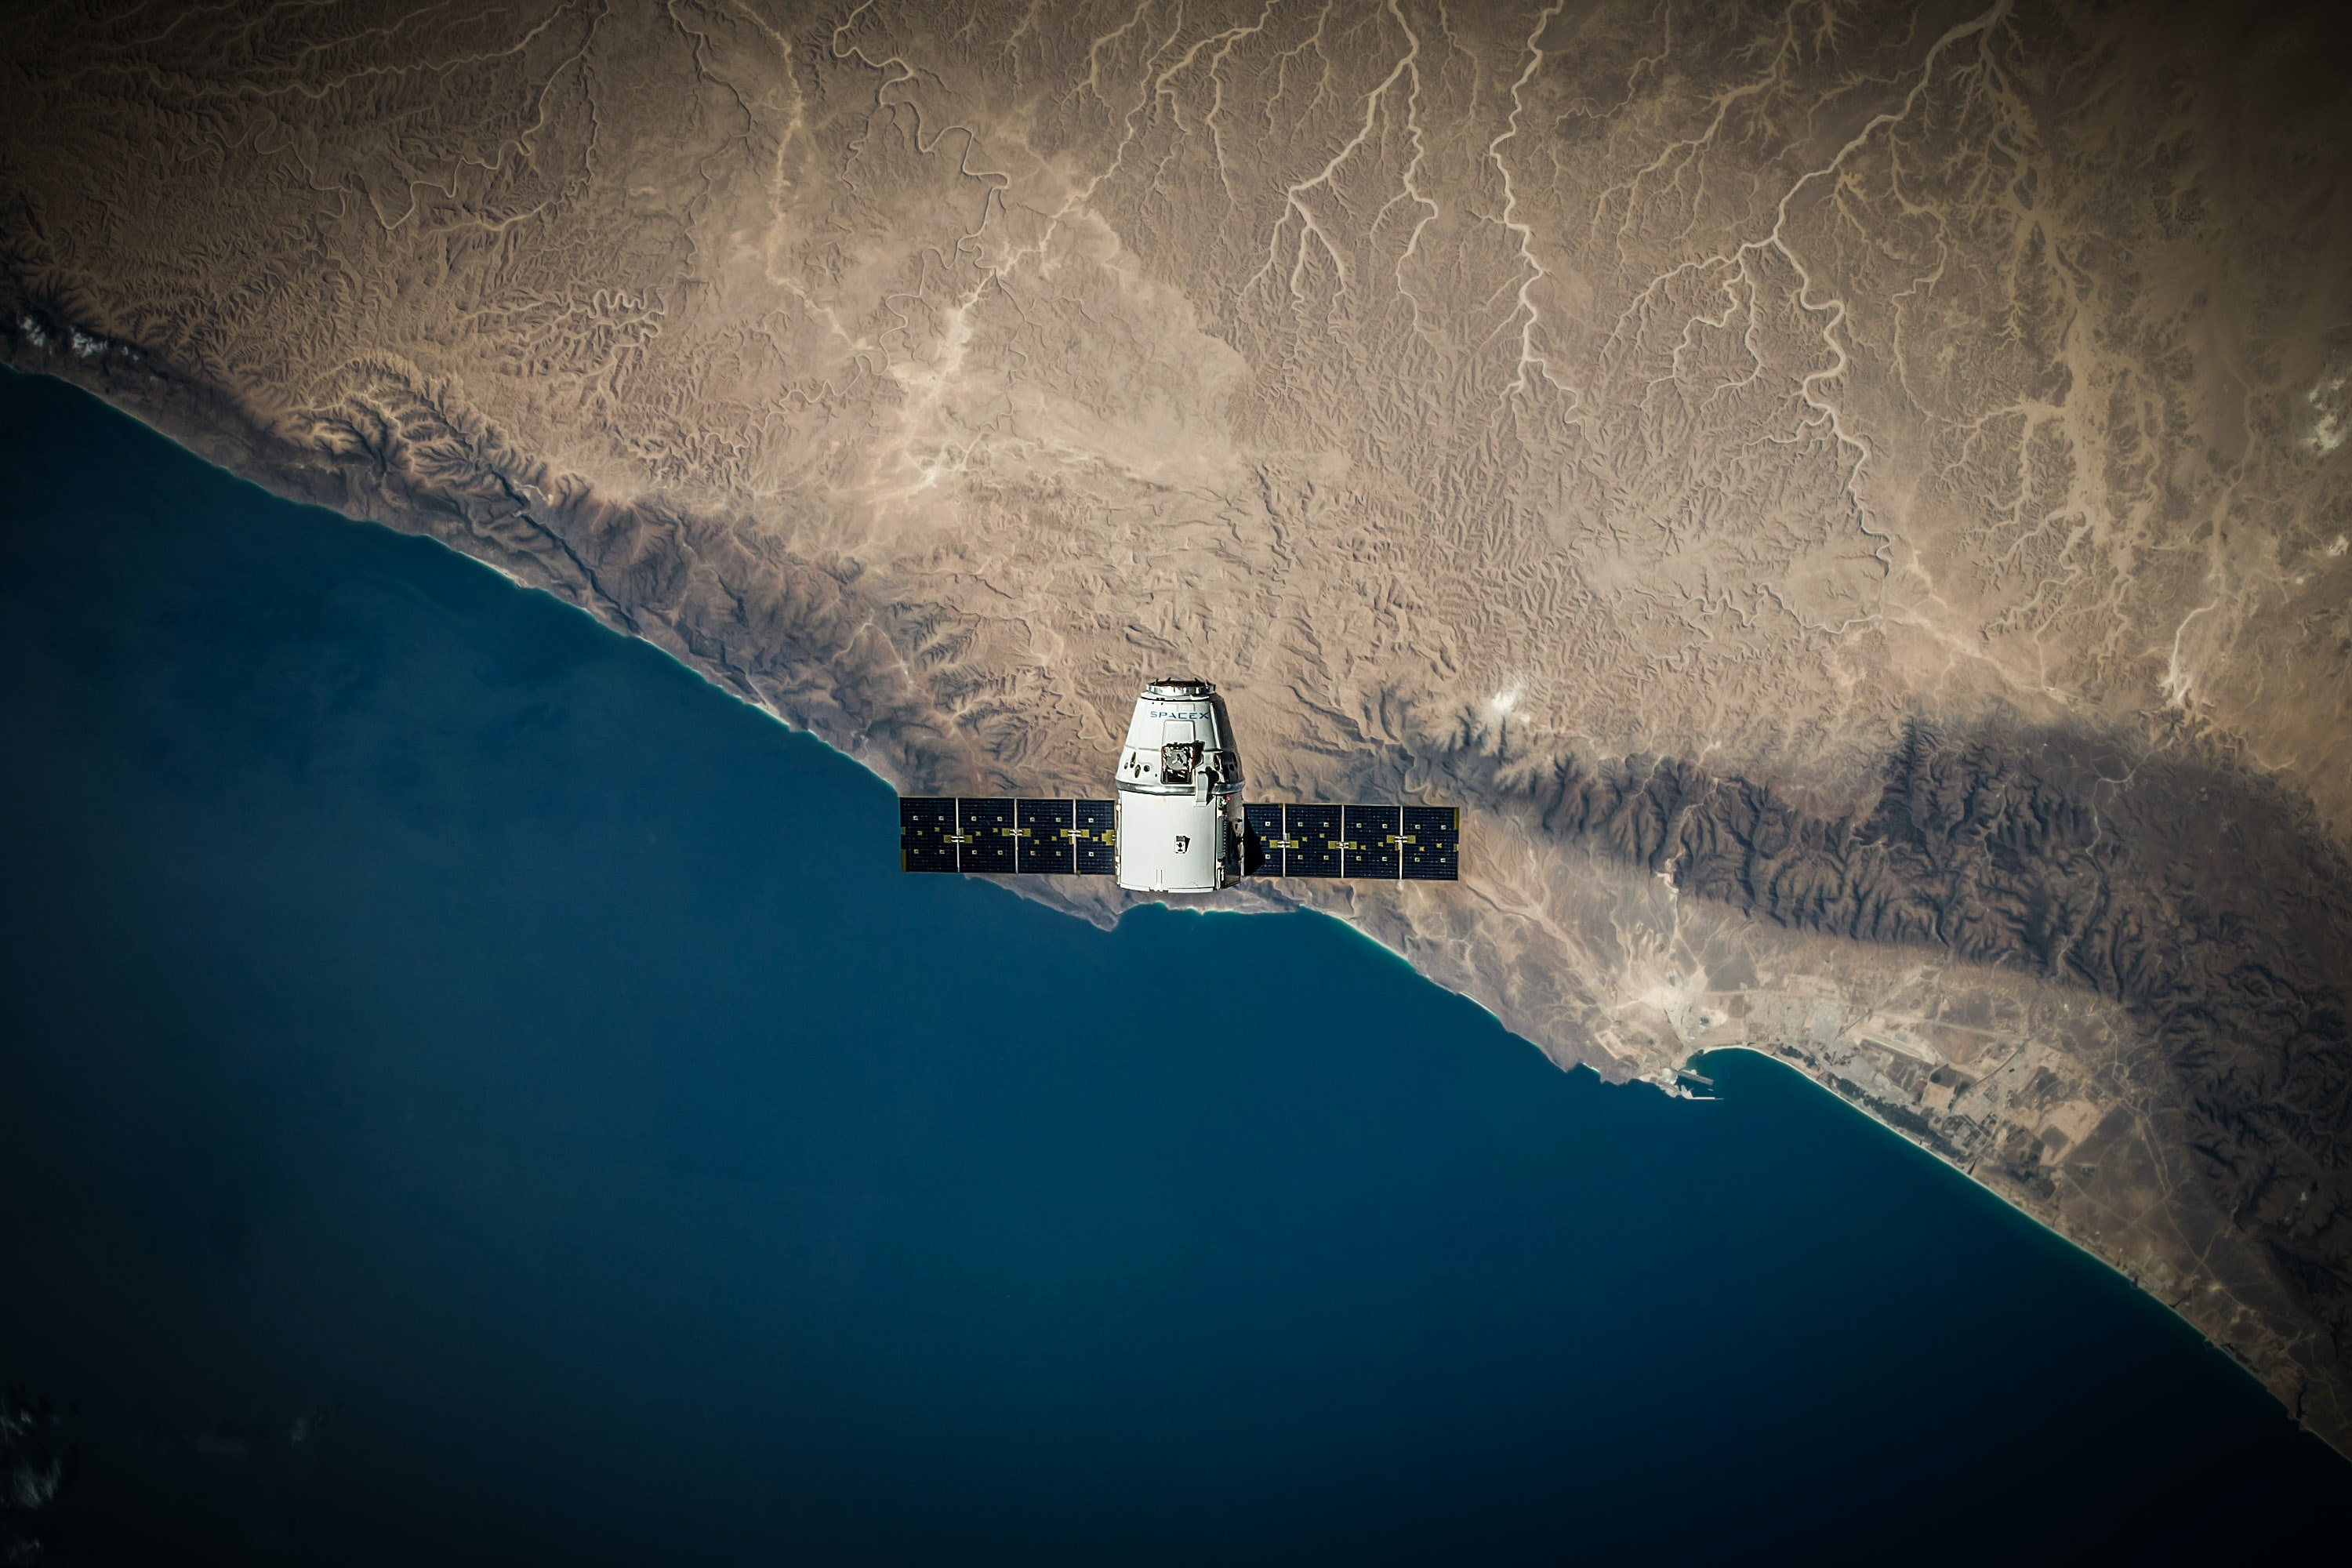 A birds-eye view of a spacex satellite travelling over Earth